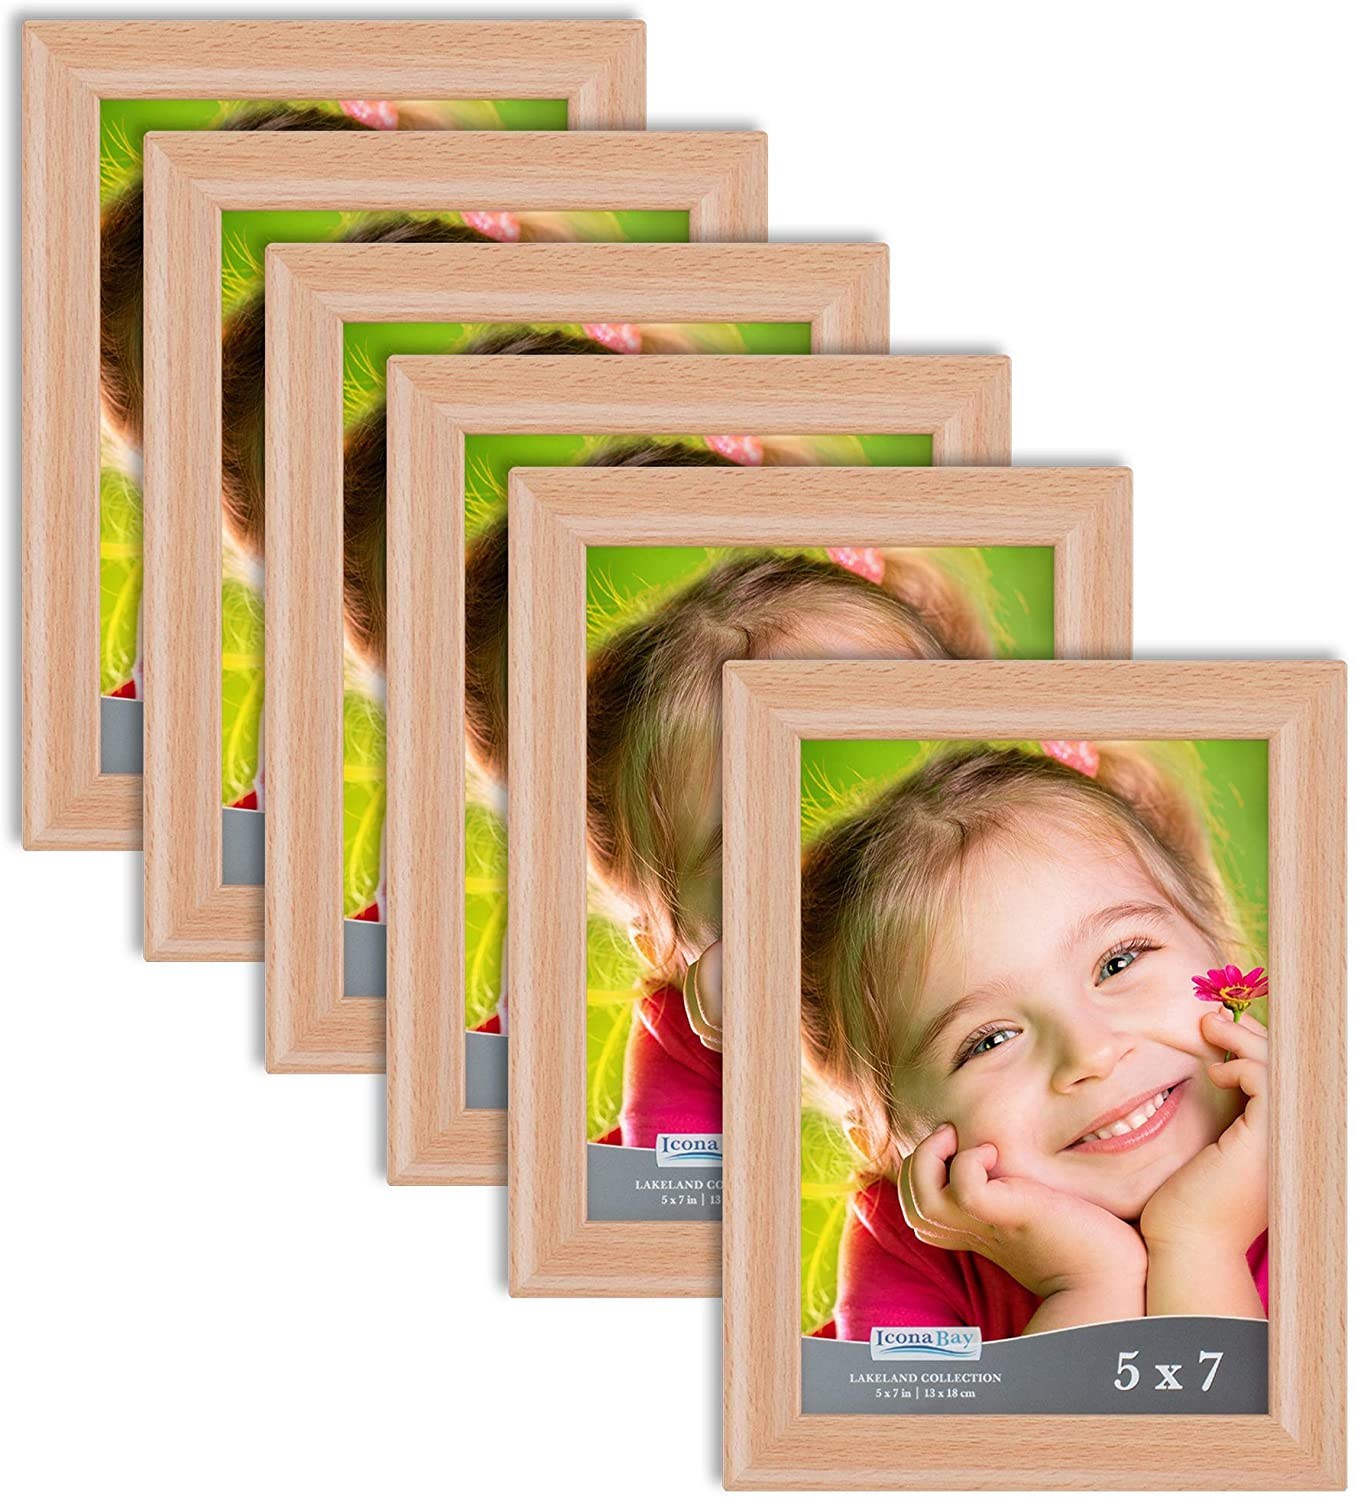 Icona Bay 5x7 (13x18 cm) Picture Frames (Beechwood Finish, 6 Pack), Contemporary Photo Frames 5 x 7, Composite Wood Frames for Walls or Table Top, Lakeland Collection